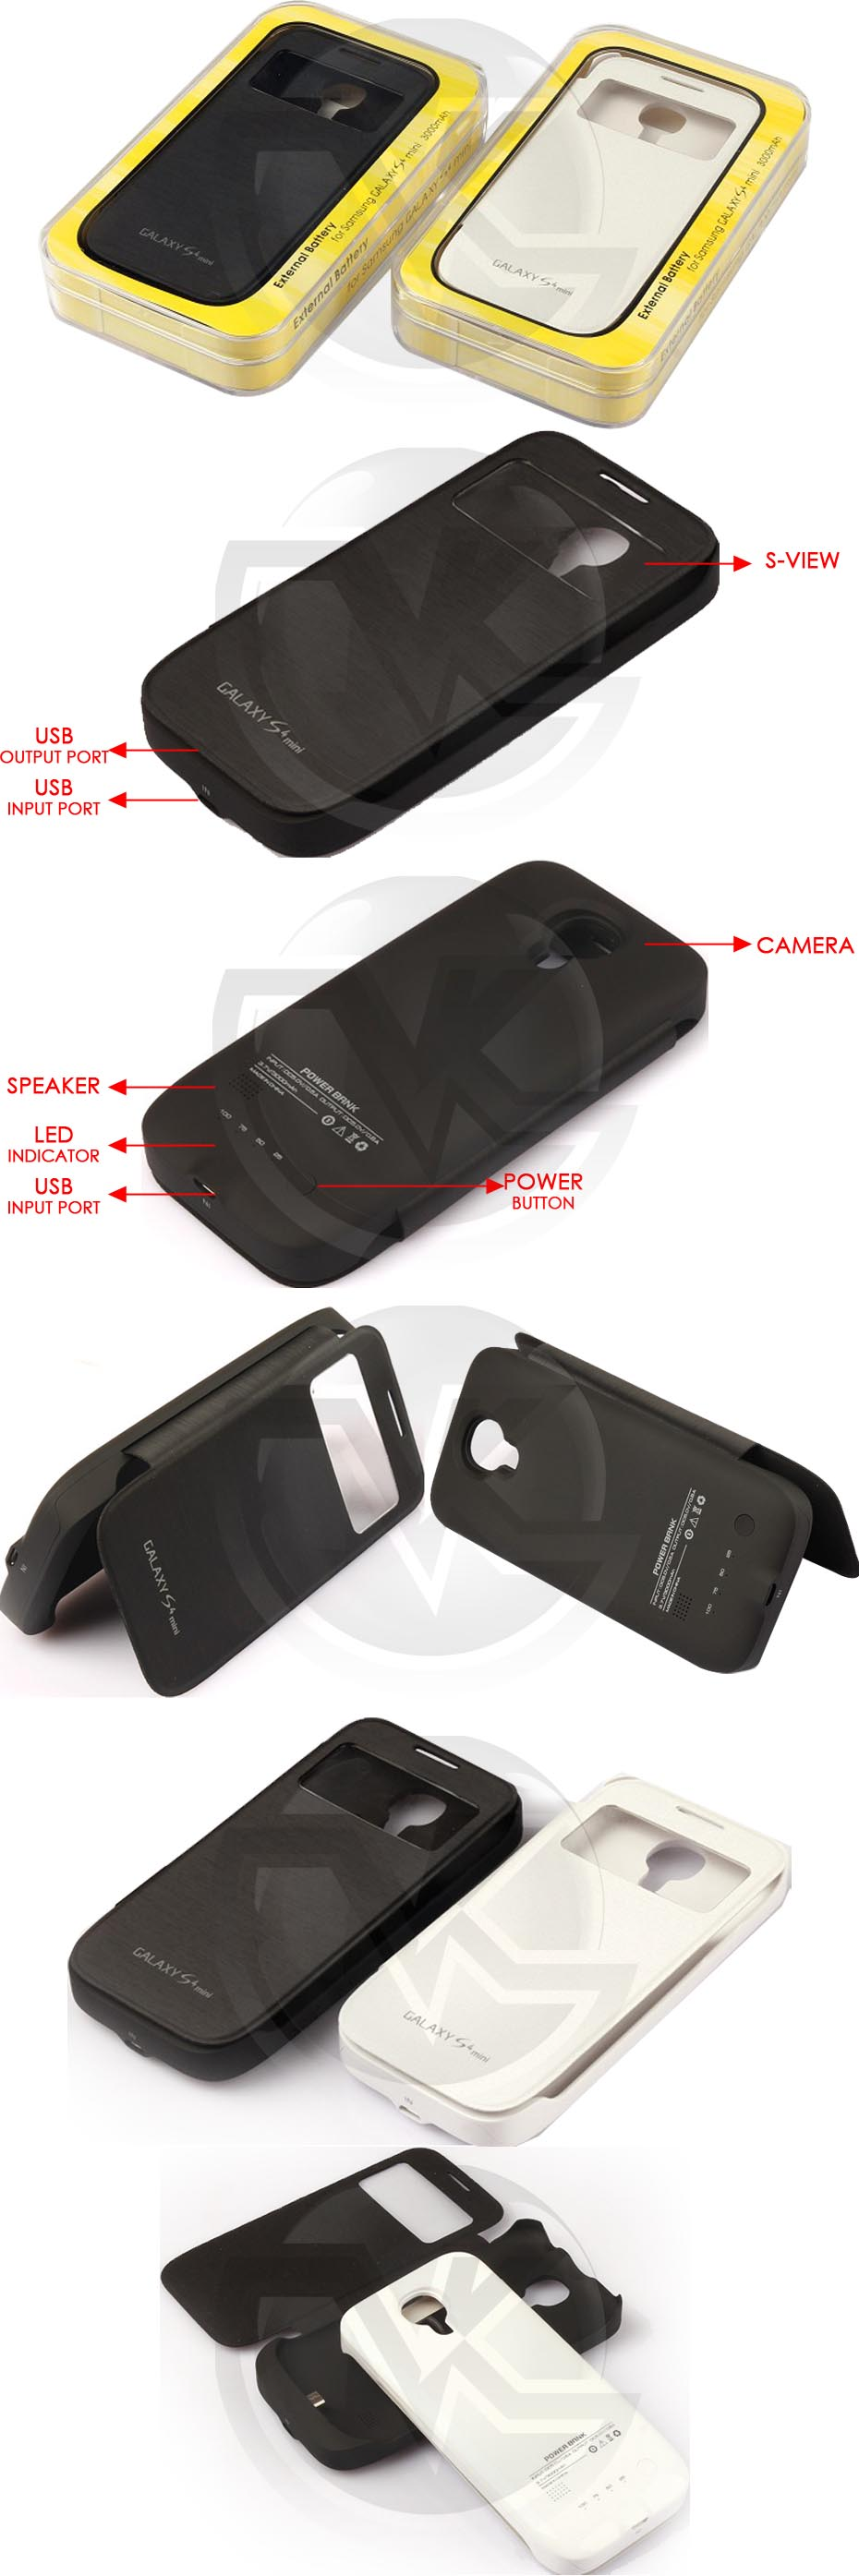 Power Case Flip Cover S-View 3000mAh For Samsung S4 MiniI 9190 Overview